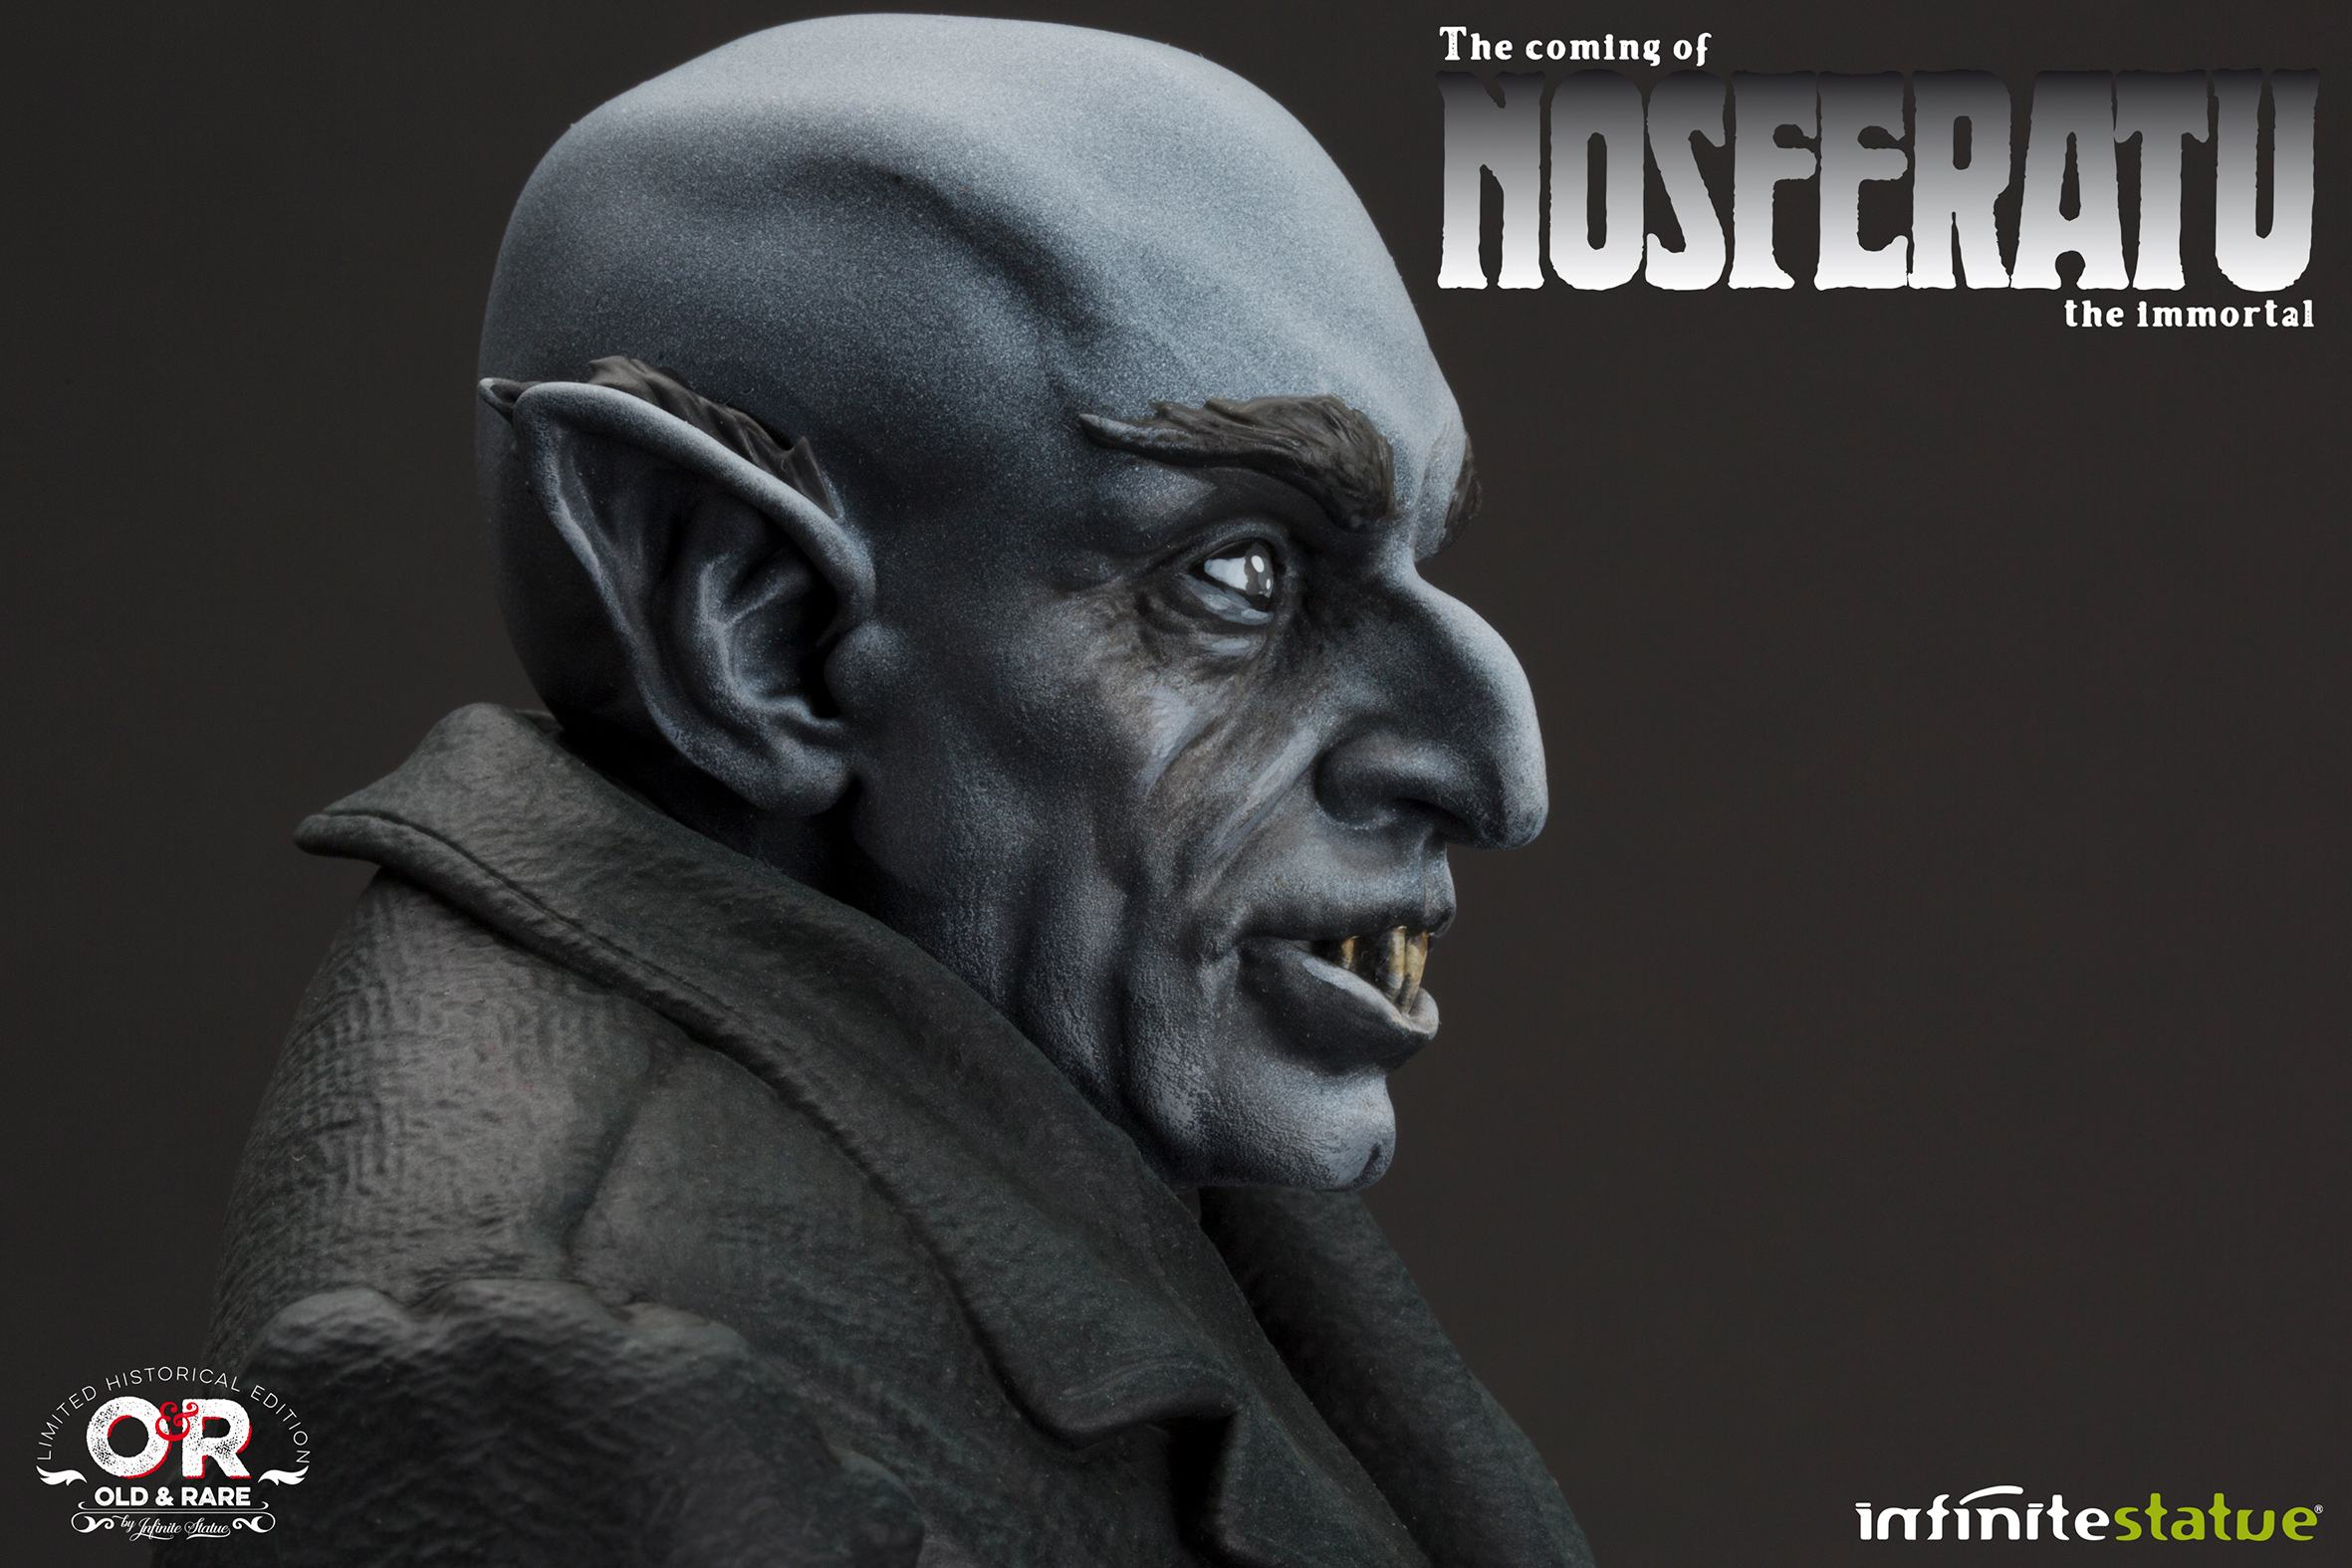 estatua-the-coming-of-nosferatu-statue-05